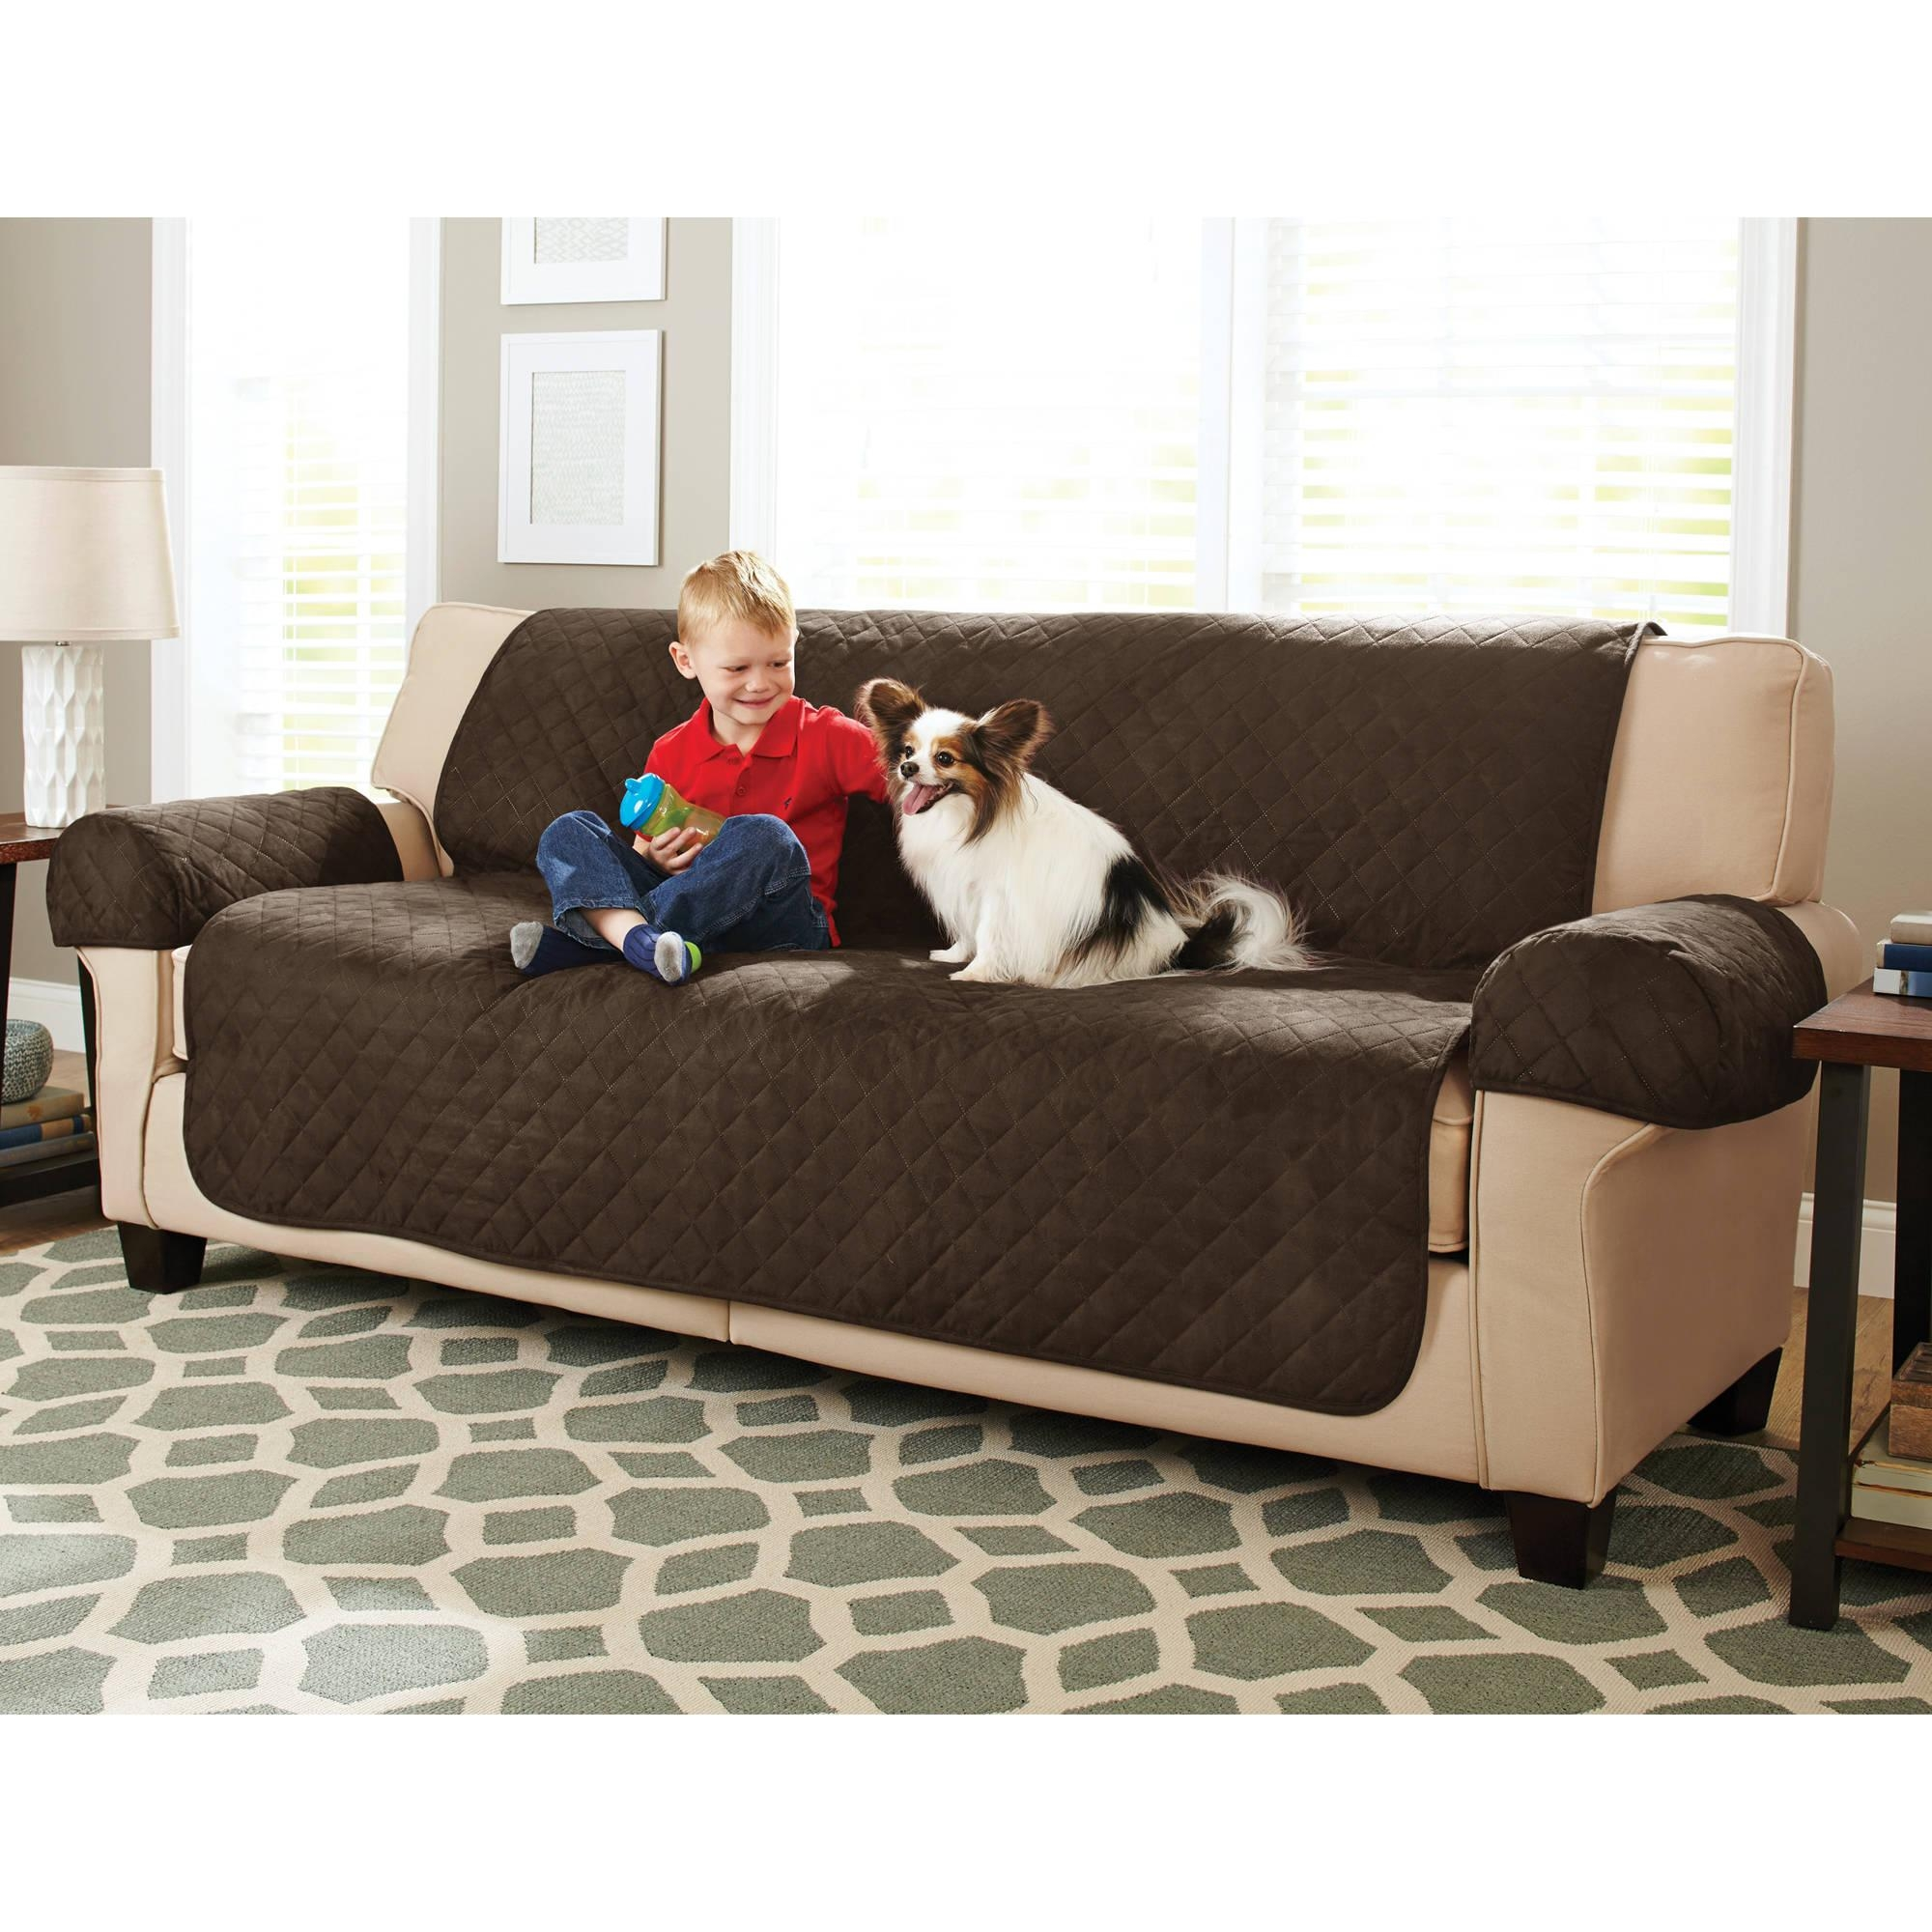 Better Homes And Gardens Waterproof Non Slip Faux Suede Pet Pertaining To Sofas With Black Cover (View 13 of 20)